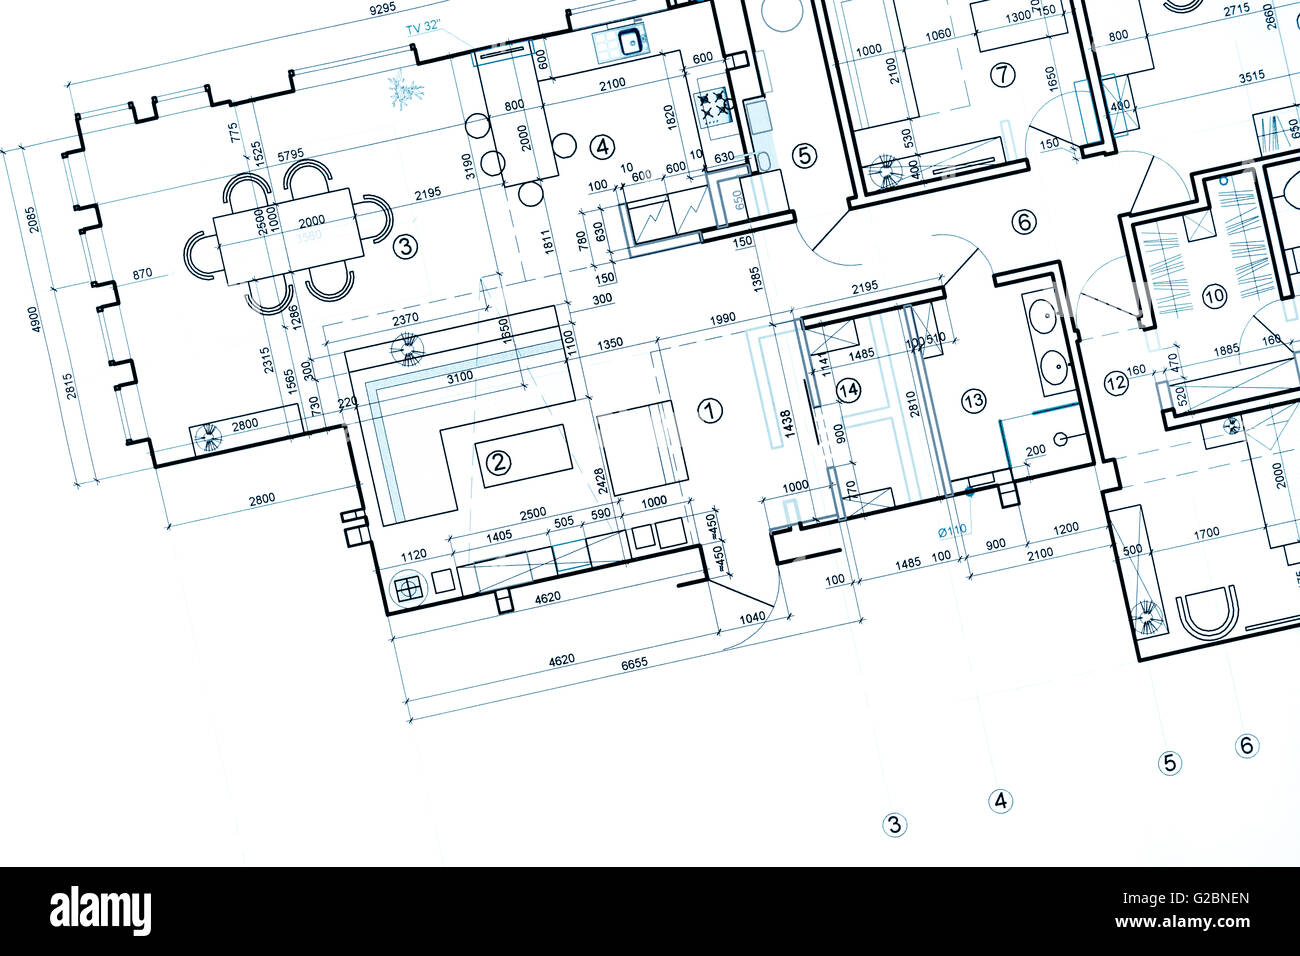 architectural drawings. Blueprint Floor Plans, Architectural Drawings, Construction Background Drawings